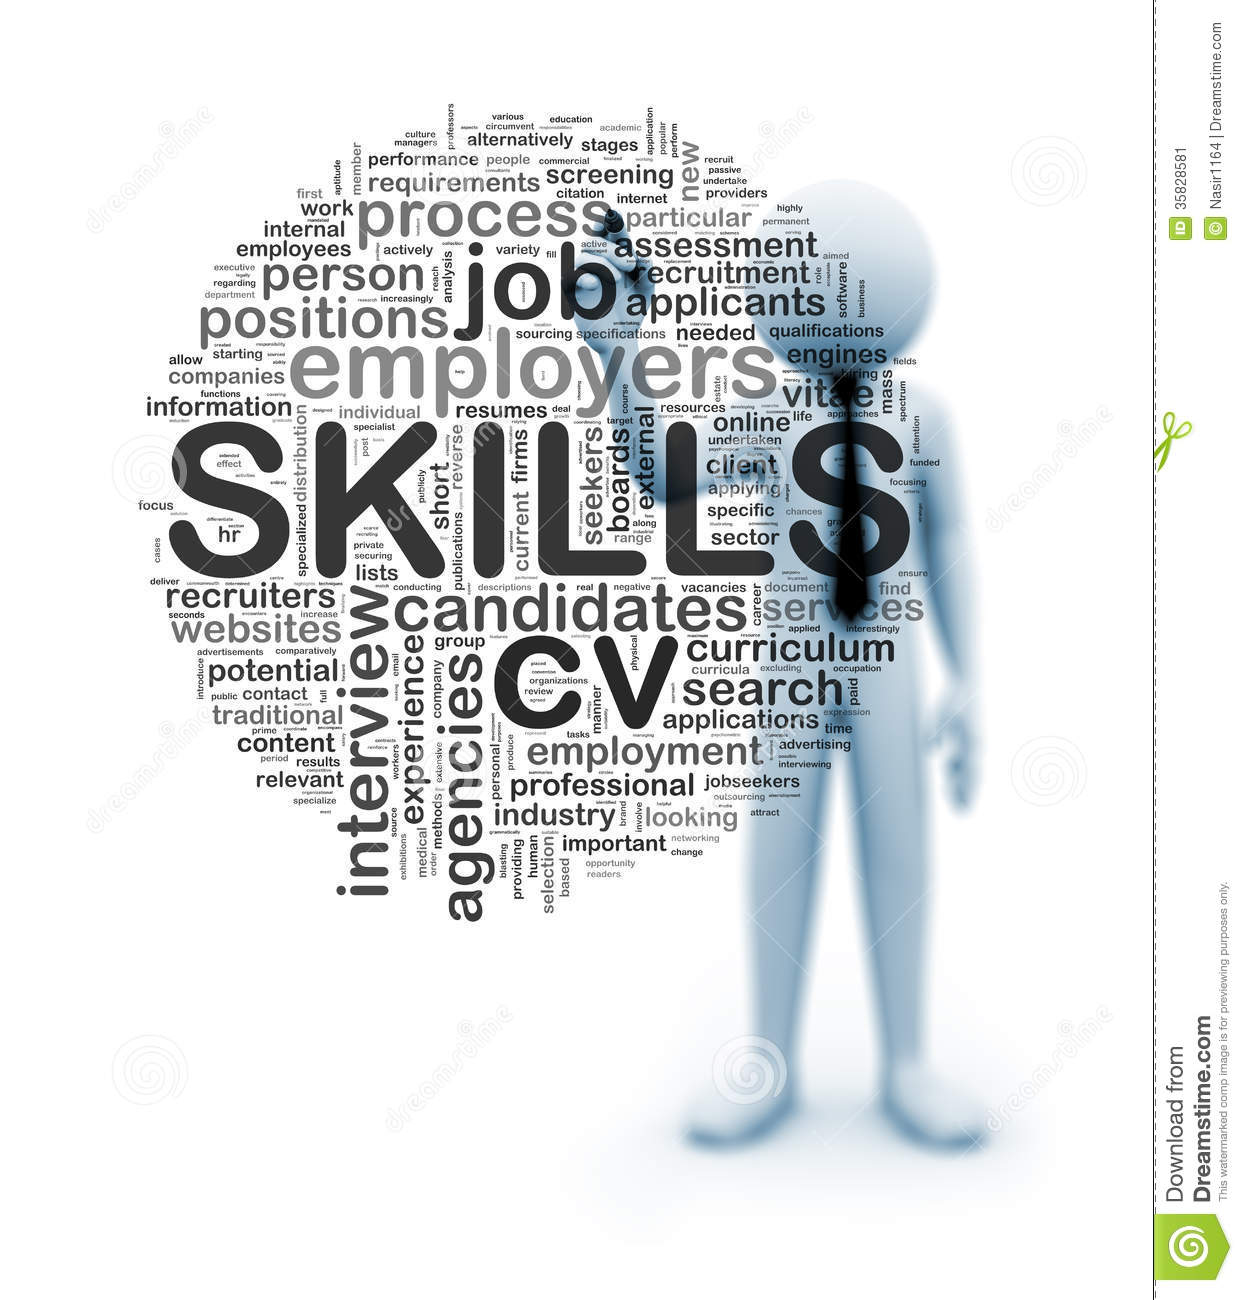 d-businessman-writing-skill-wordcloud-touch-screen-rendering-business-person-word-tags-skills-transparent-white-people-35828581.jpg